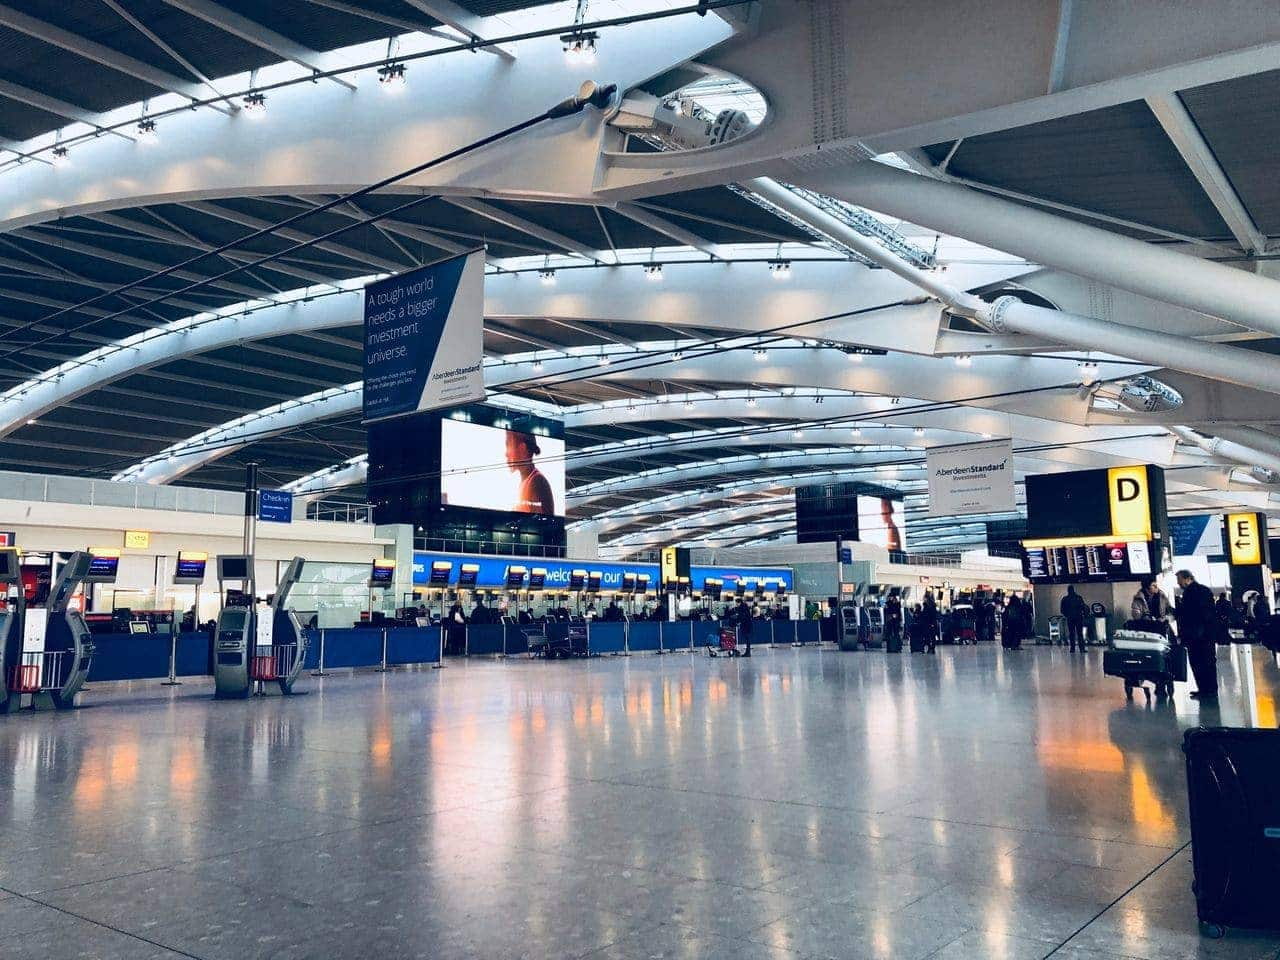 Flexible airports infrastructure